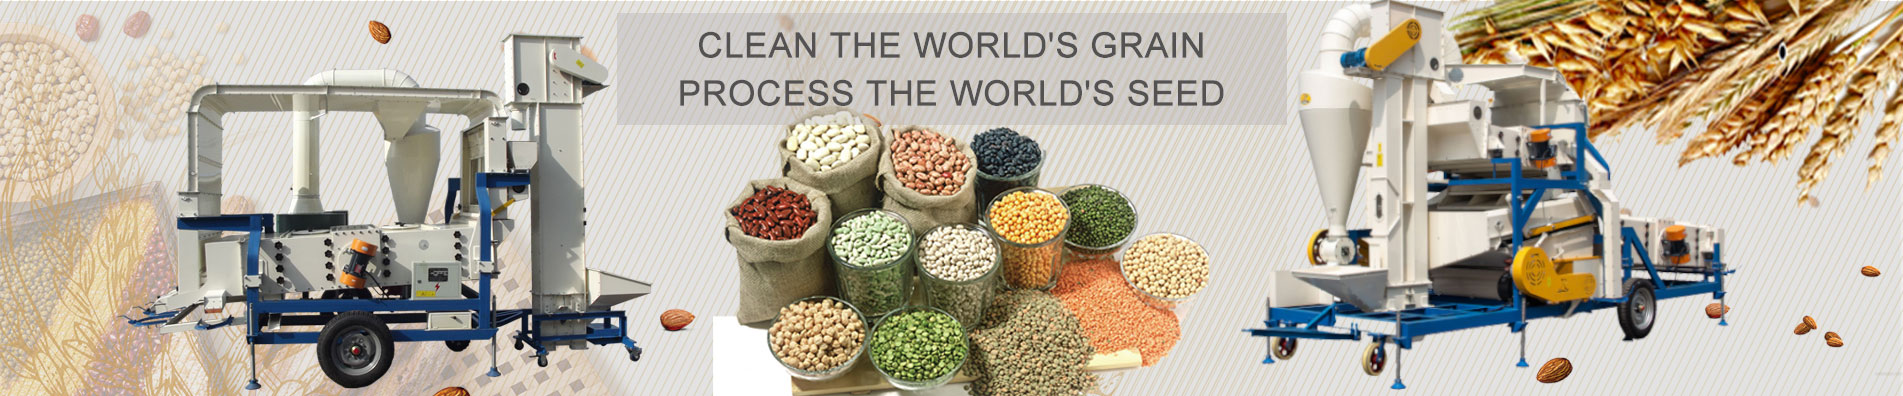 Clean the worlds grain  Process the worlds seed